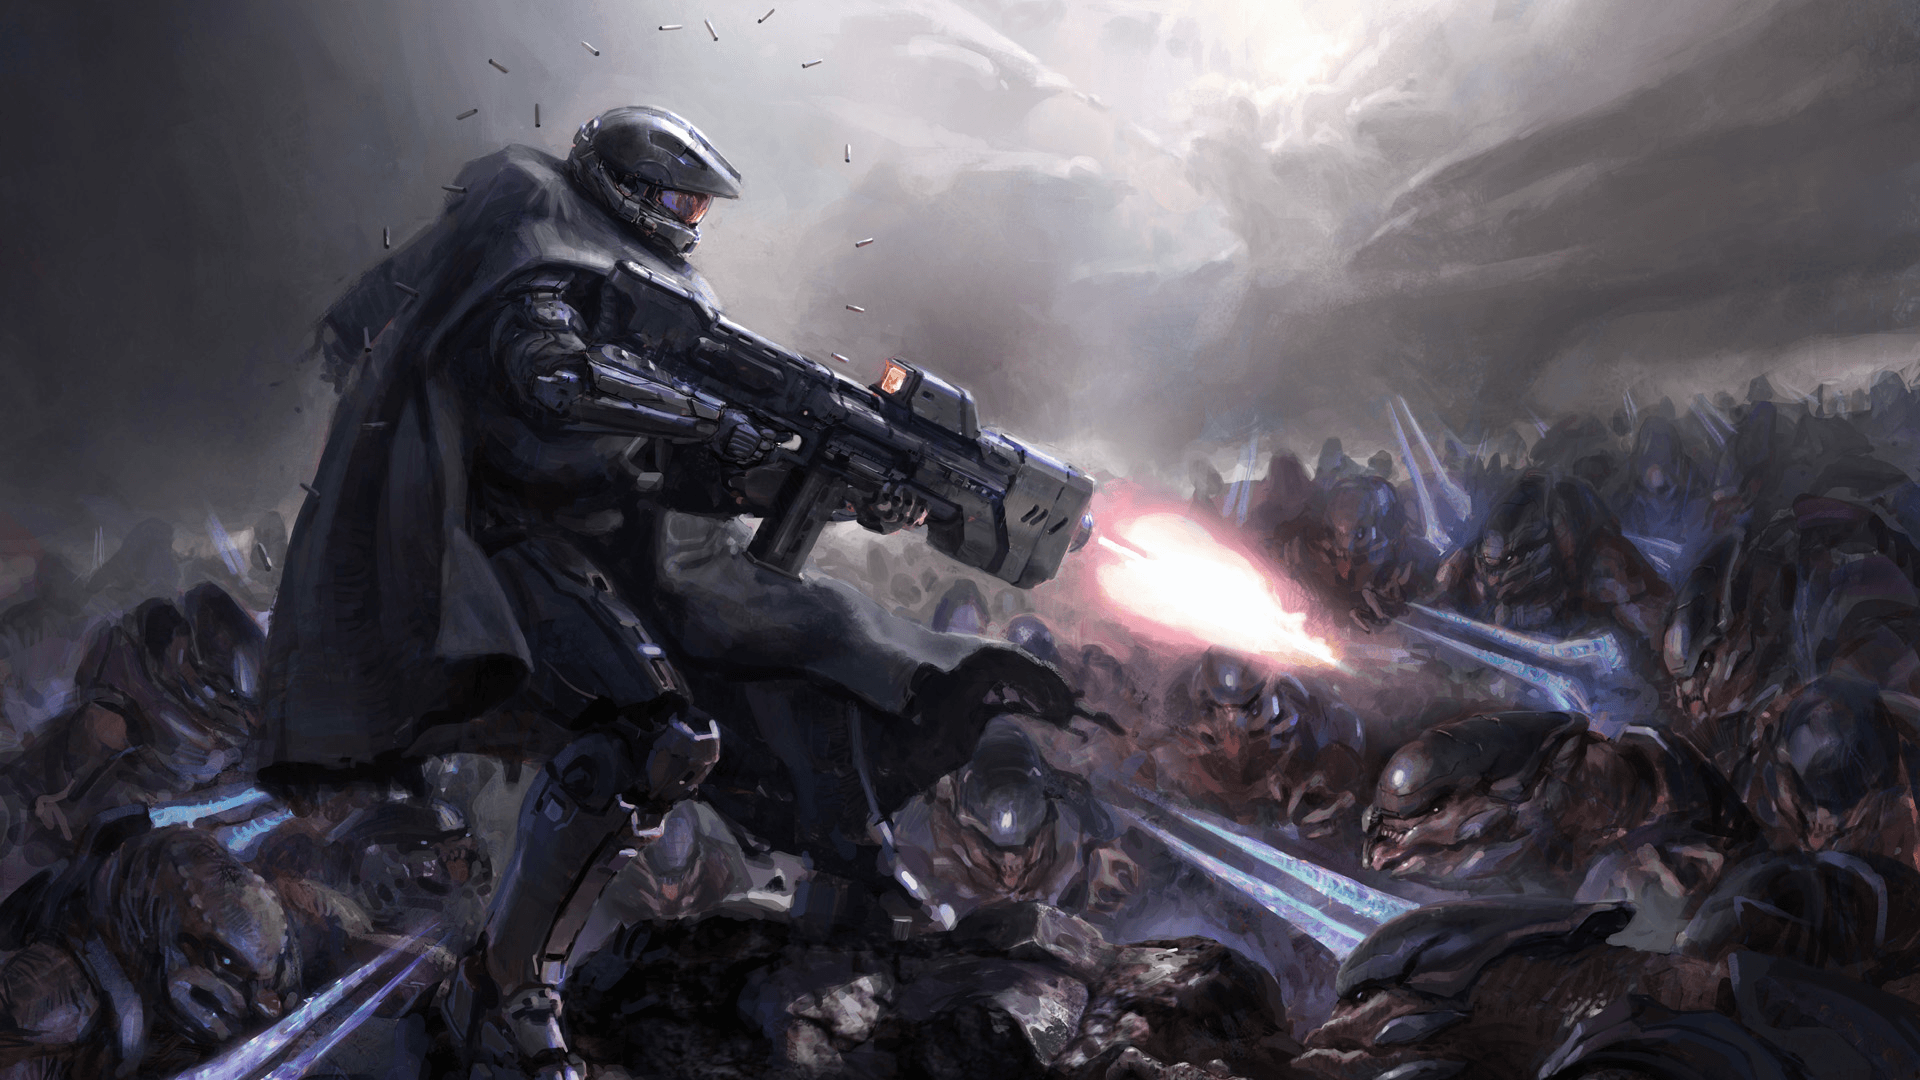 Halo Lone Wolf Wallpapers Top Free Halo Lone Wolf Backgrounds Wallpaperaccess